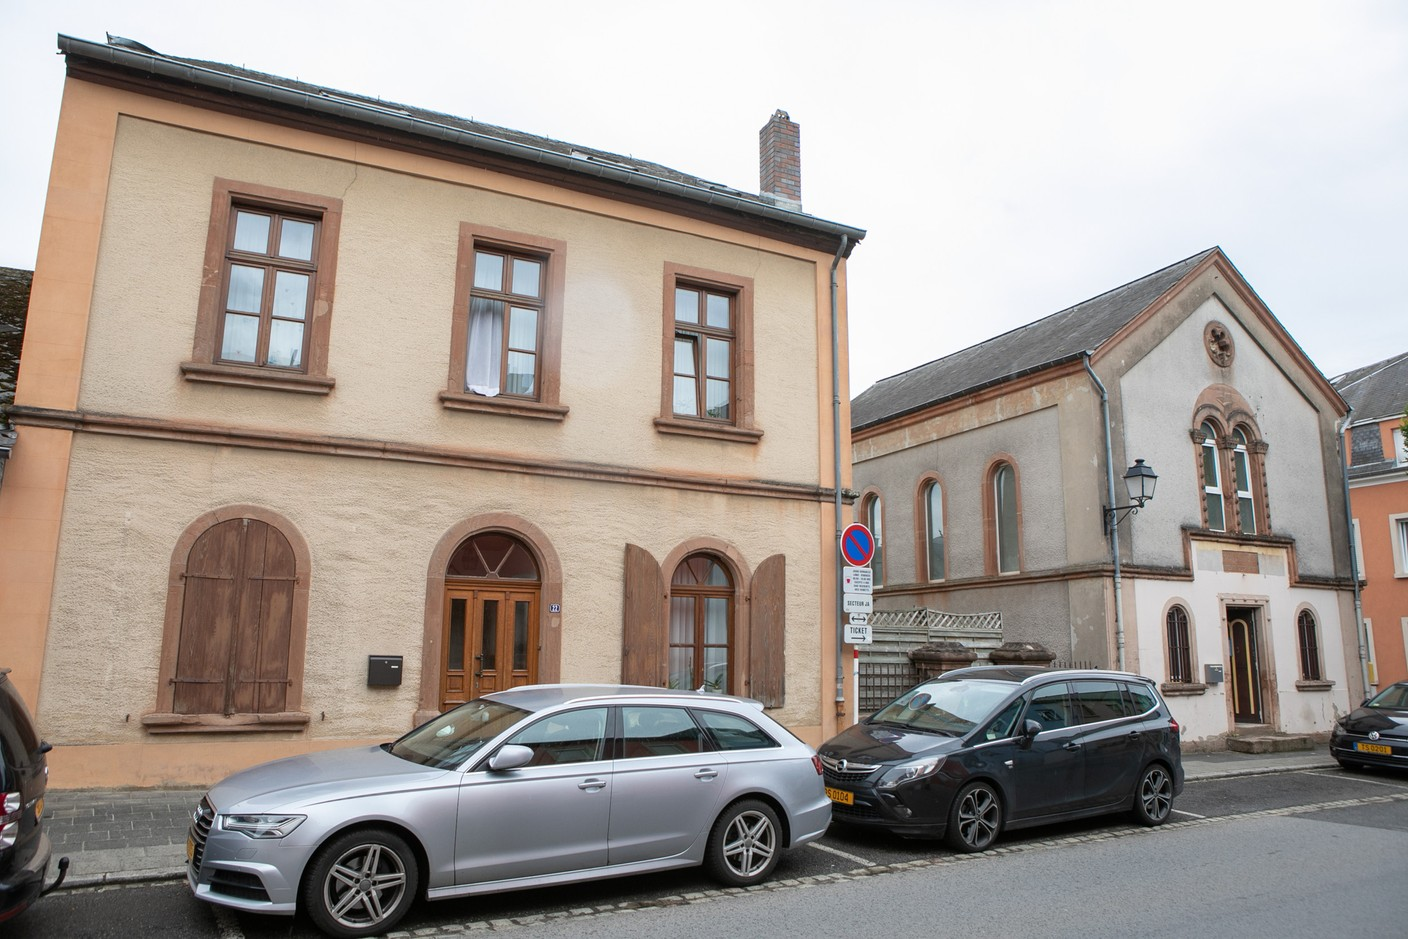 The Old Synagogue and Jewish school in Ettelbruck Matic Zorman / Maison Moderne